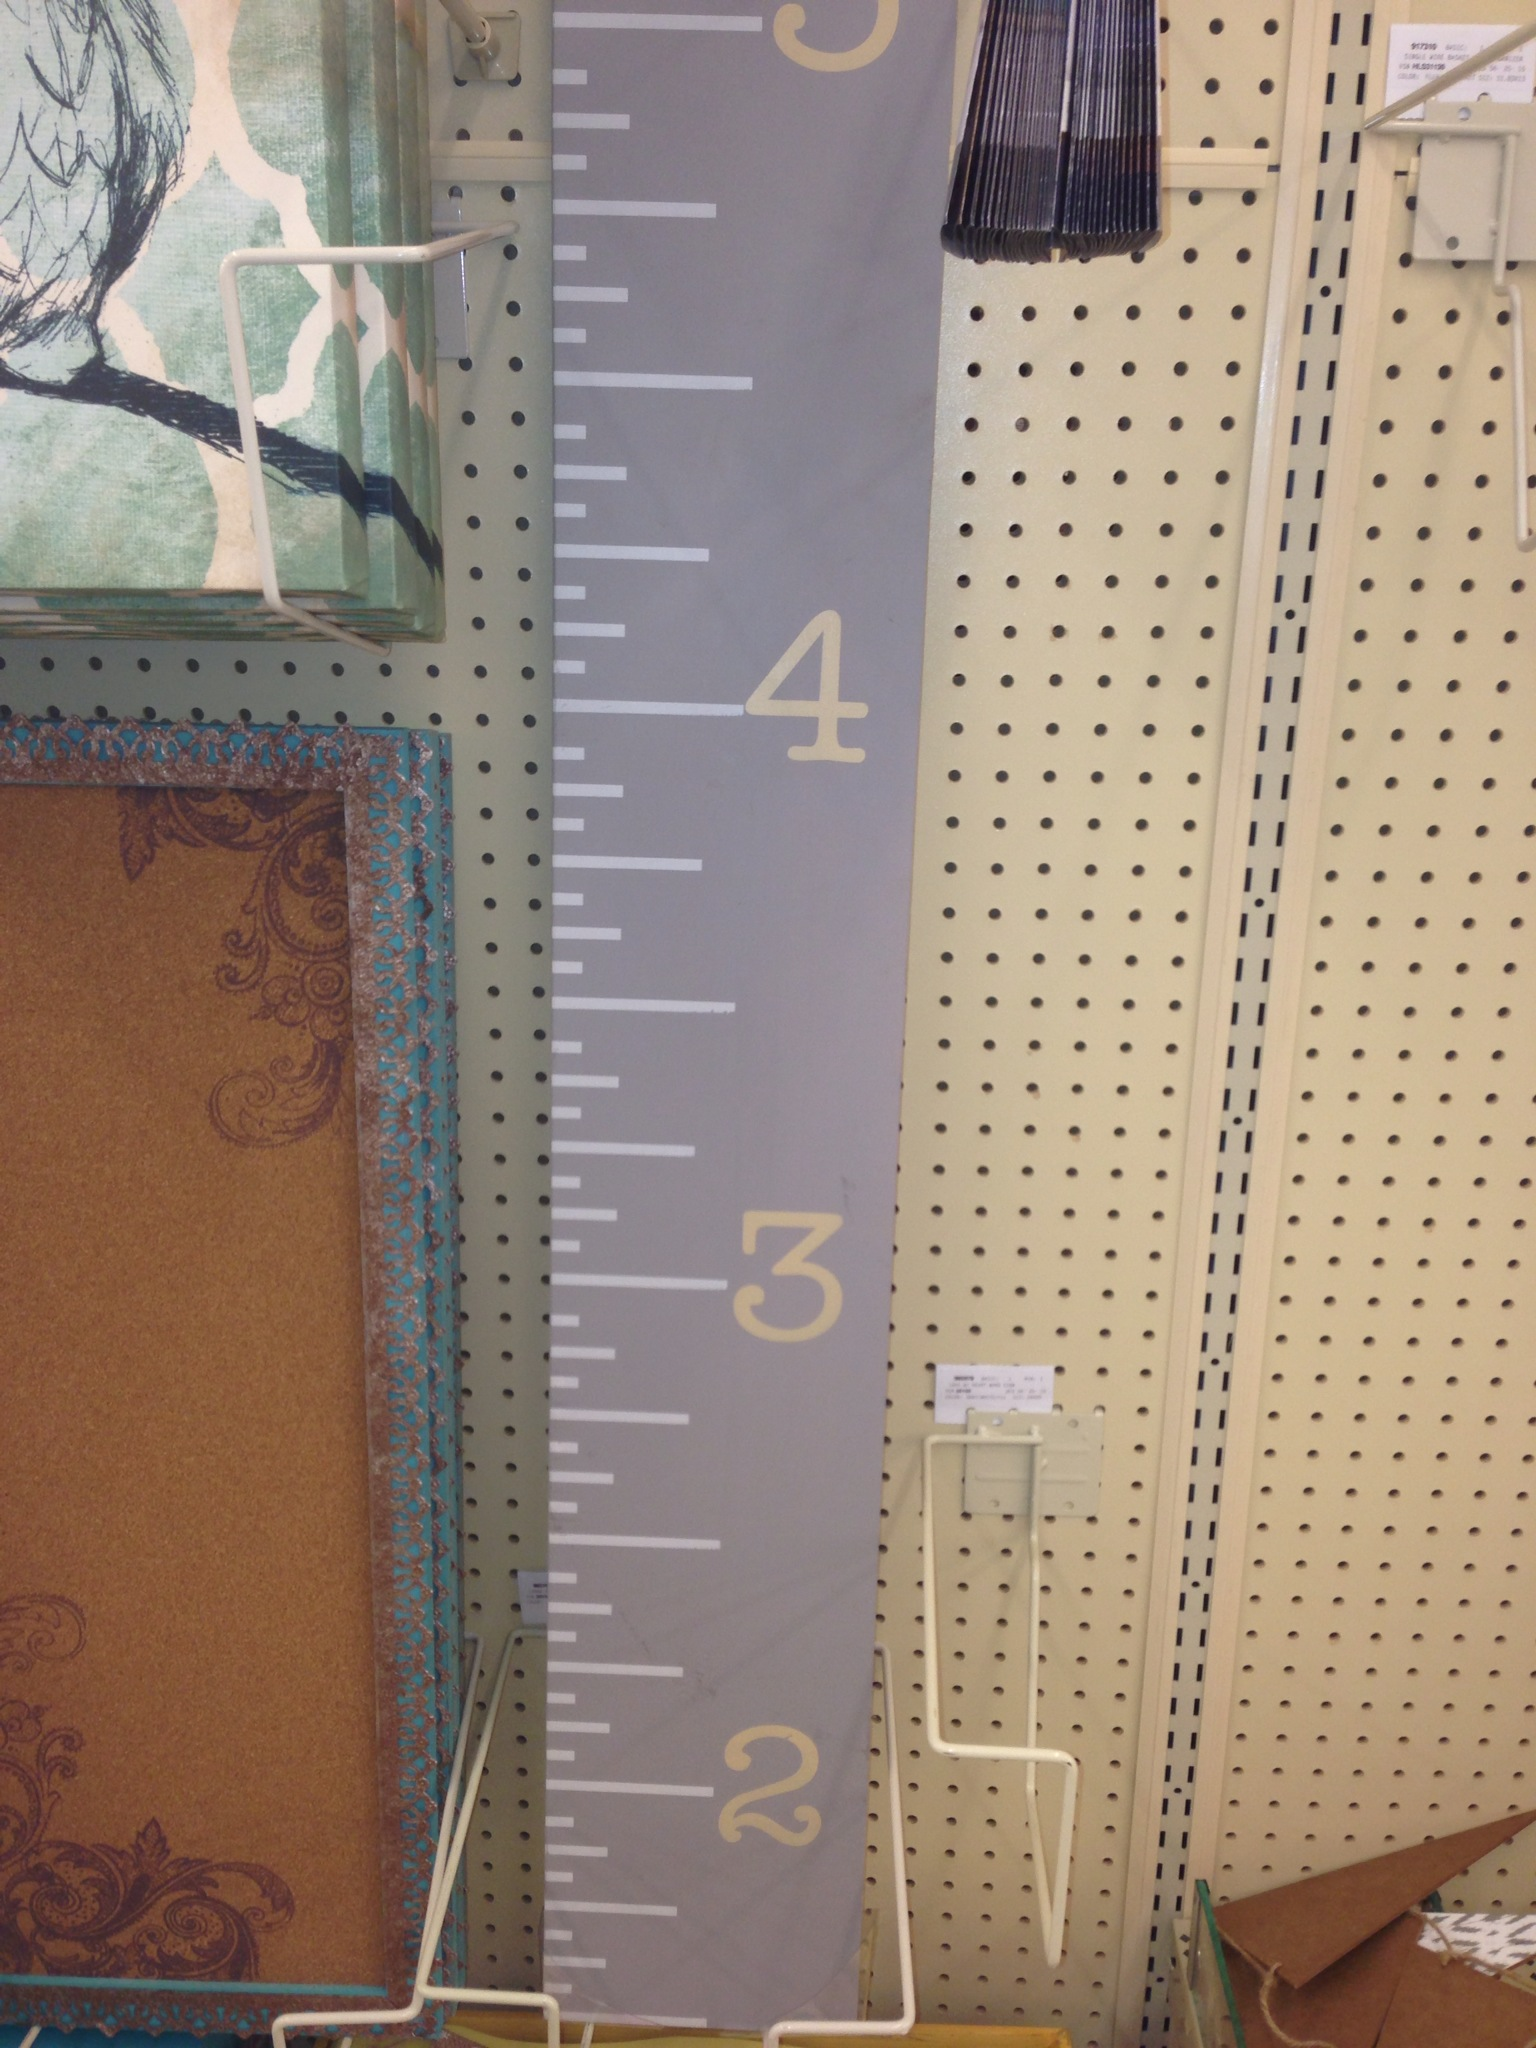 Diy large wooden ruler growth chart it kicked my diy lull into gear since ive been wanting to find something to start marking my daughters height as she grows it also needed to be something nvjuhfo Gallery